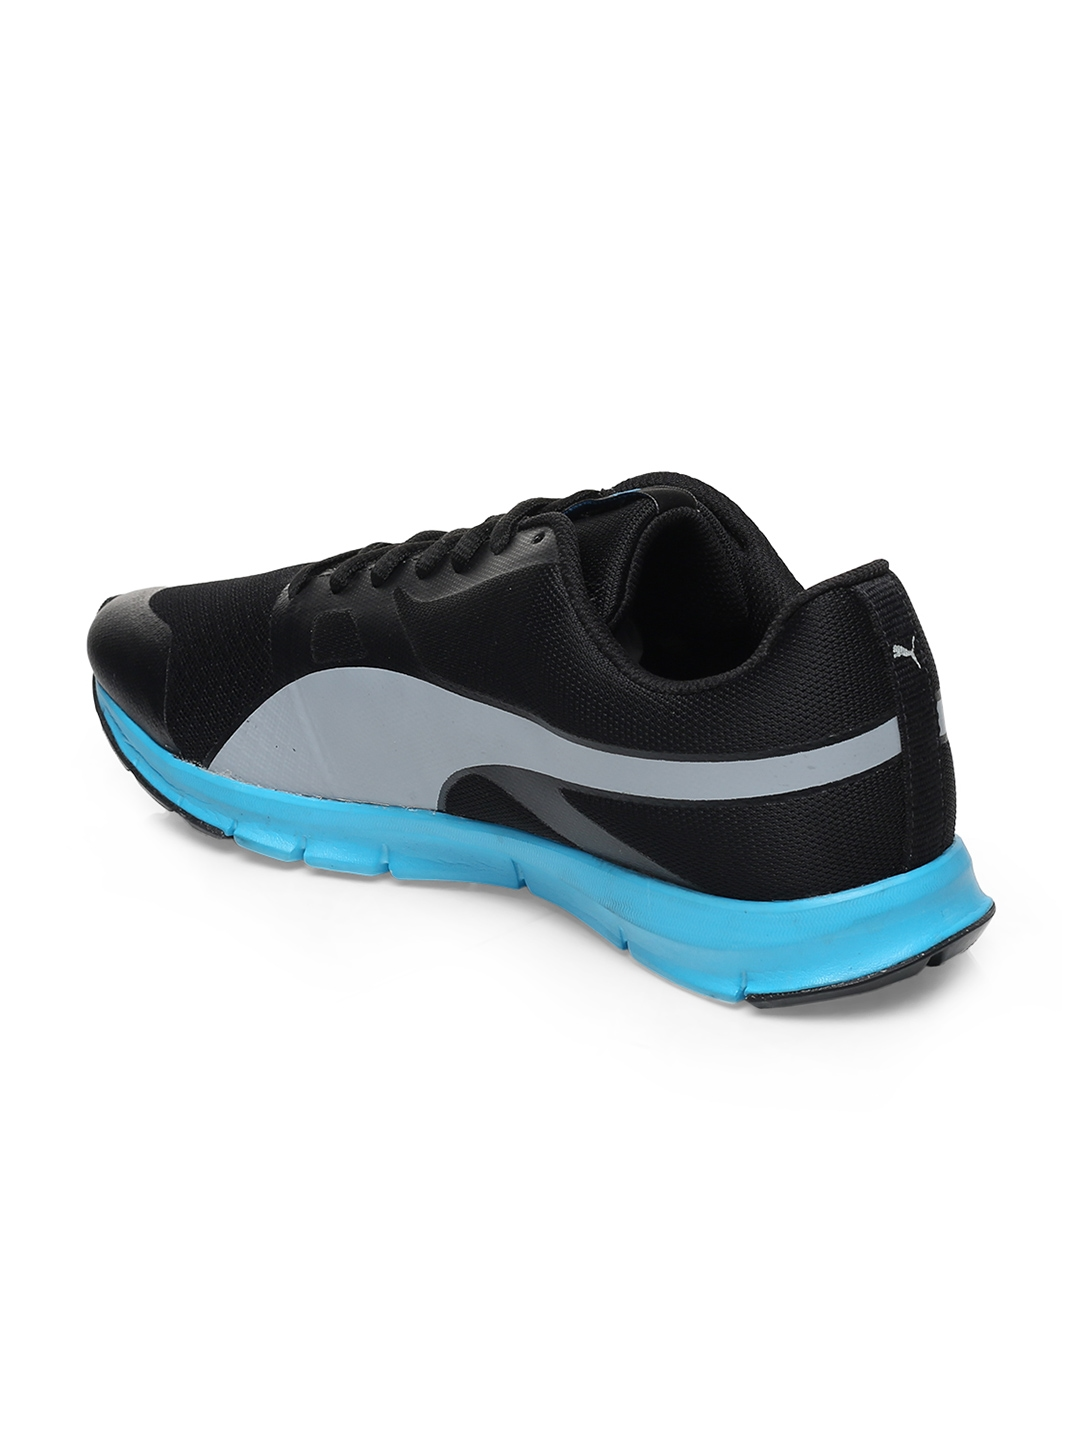 ea9d5d89b0d4 Shoes For Sports Dp Running Buy Flexracer Men Black Puma nqBYv